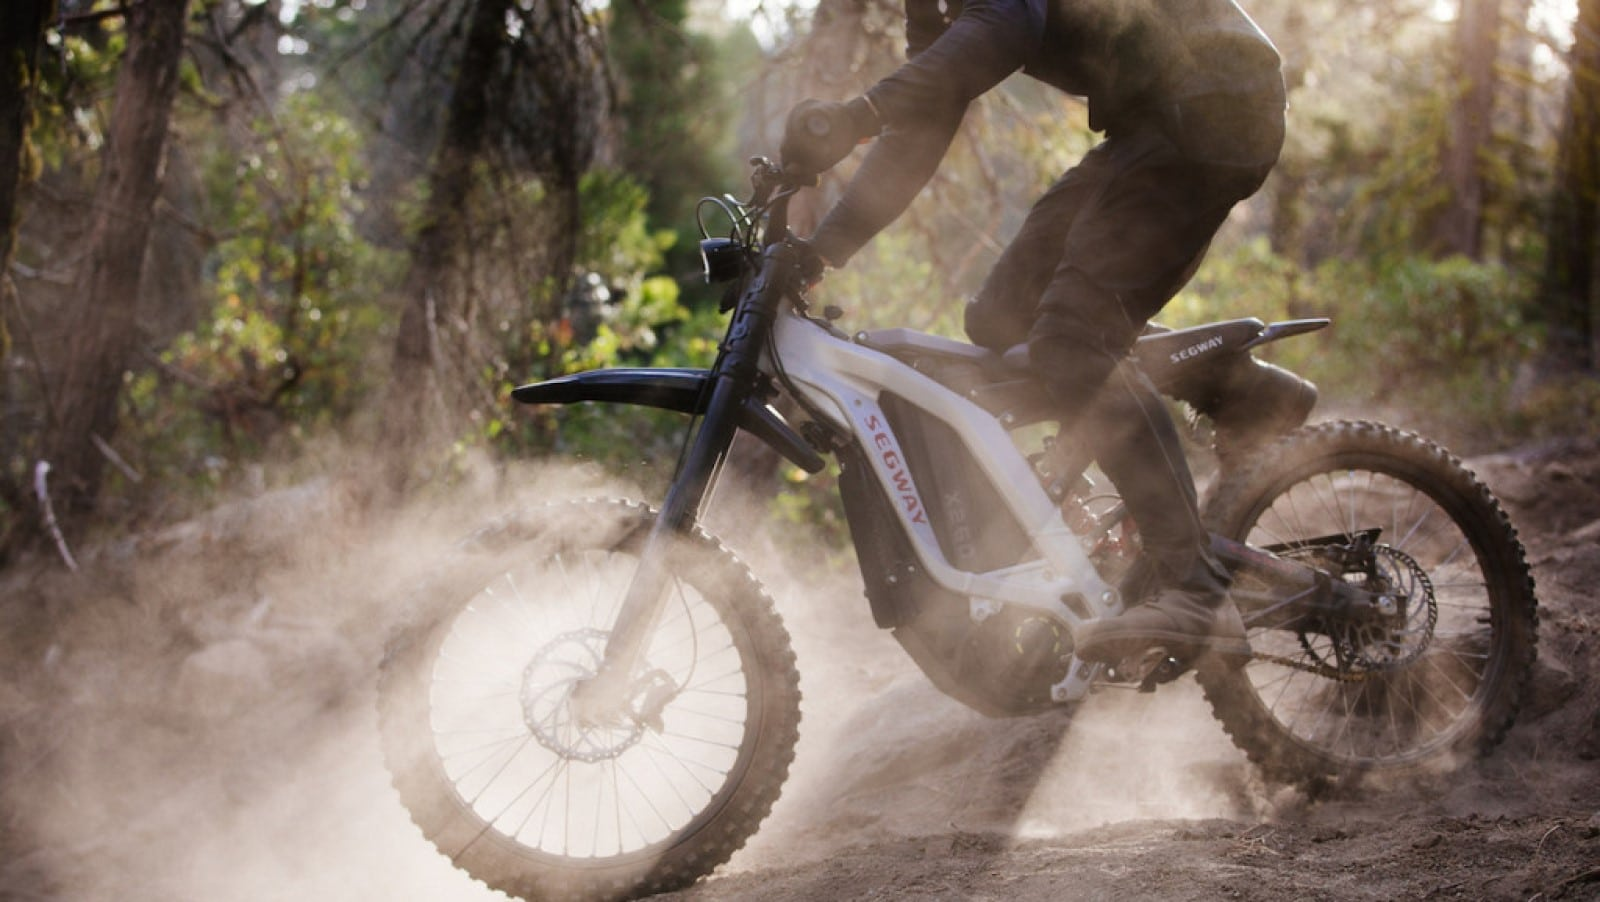 segway dirtbike on trail crowdfunding campaign